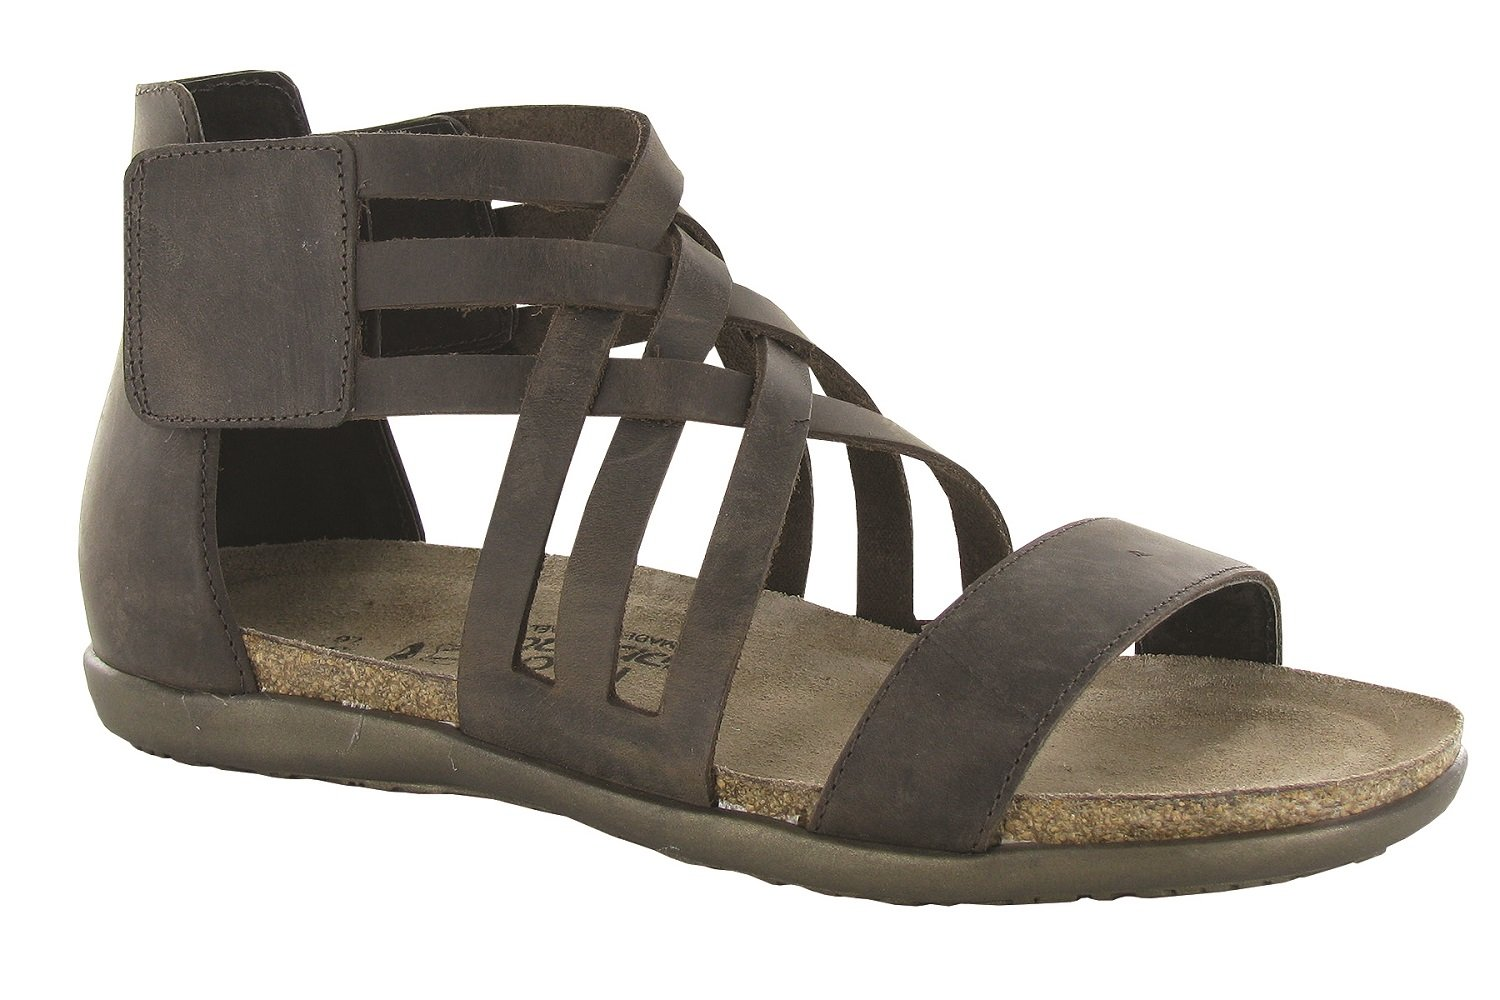 NAOT Women's Marita Sandal B0742NZ8CB 39 M EU|Crazy Horse Leather